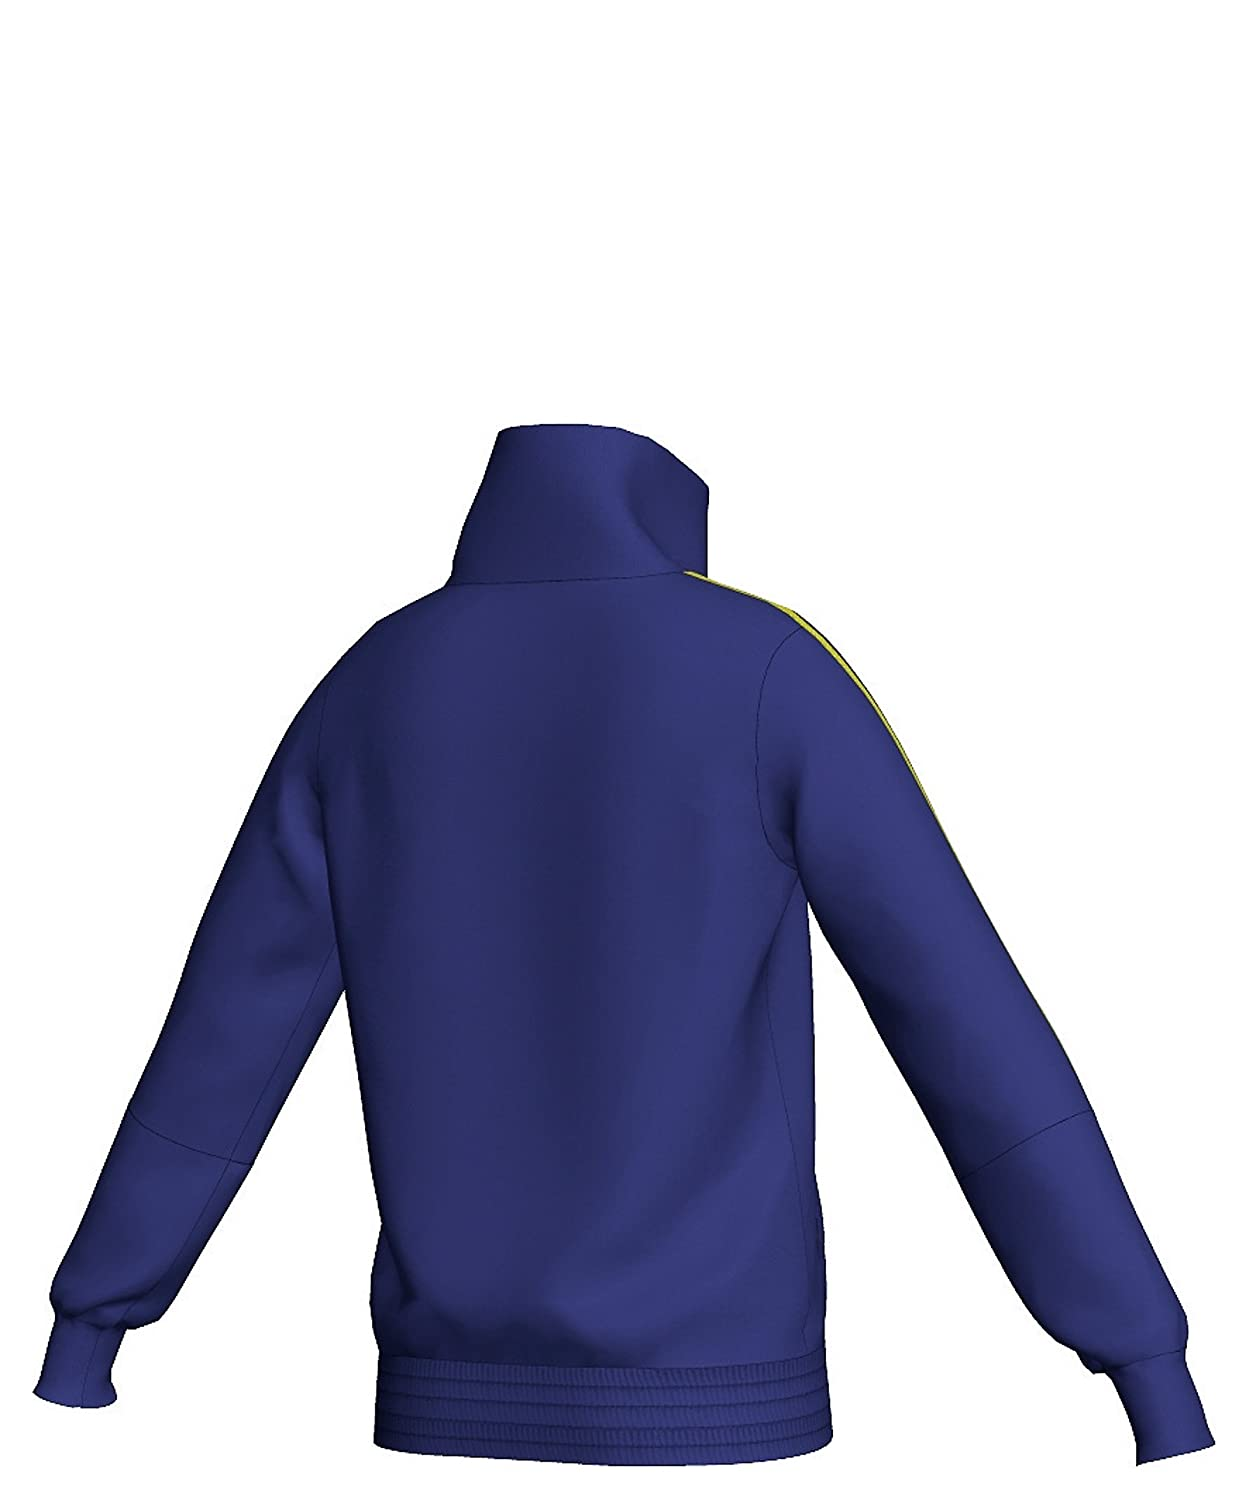 adidas reinven Ted Knit Track Top - Chaqueta de chándal Chica ...